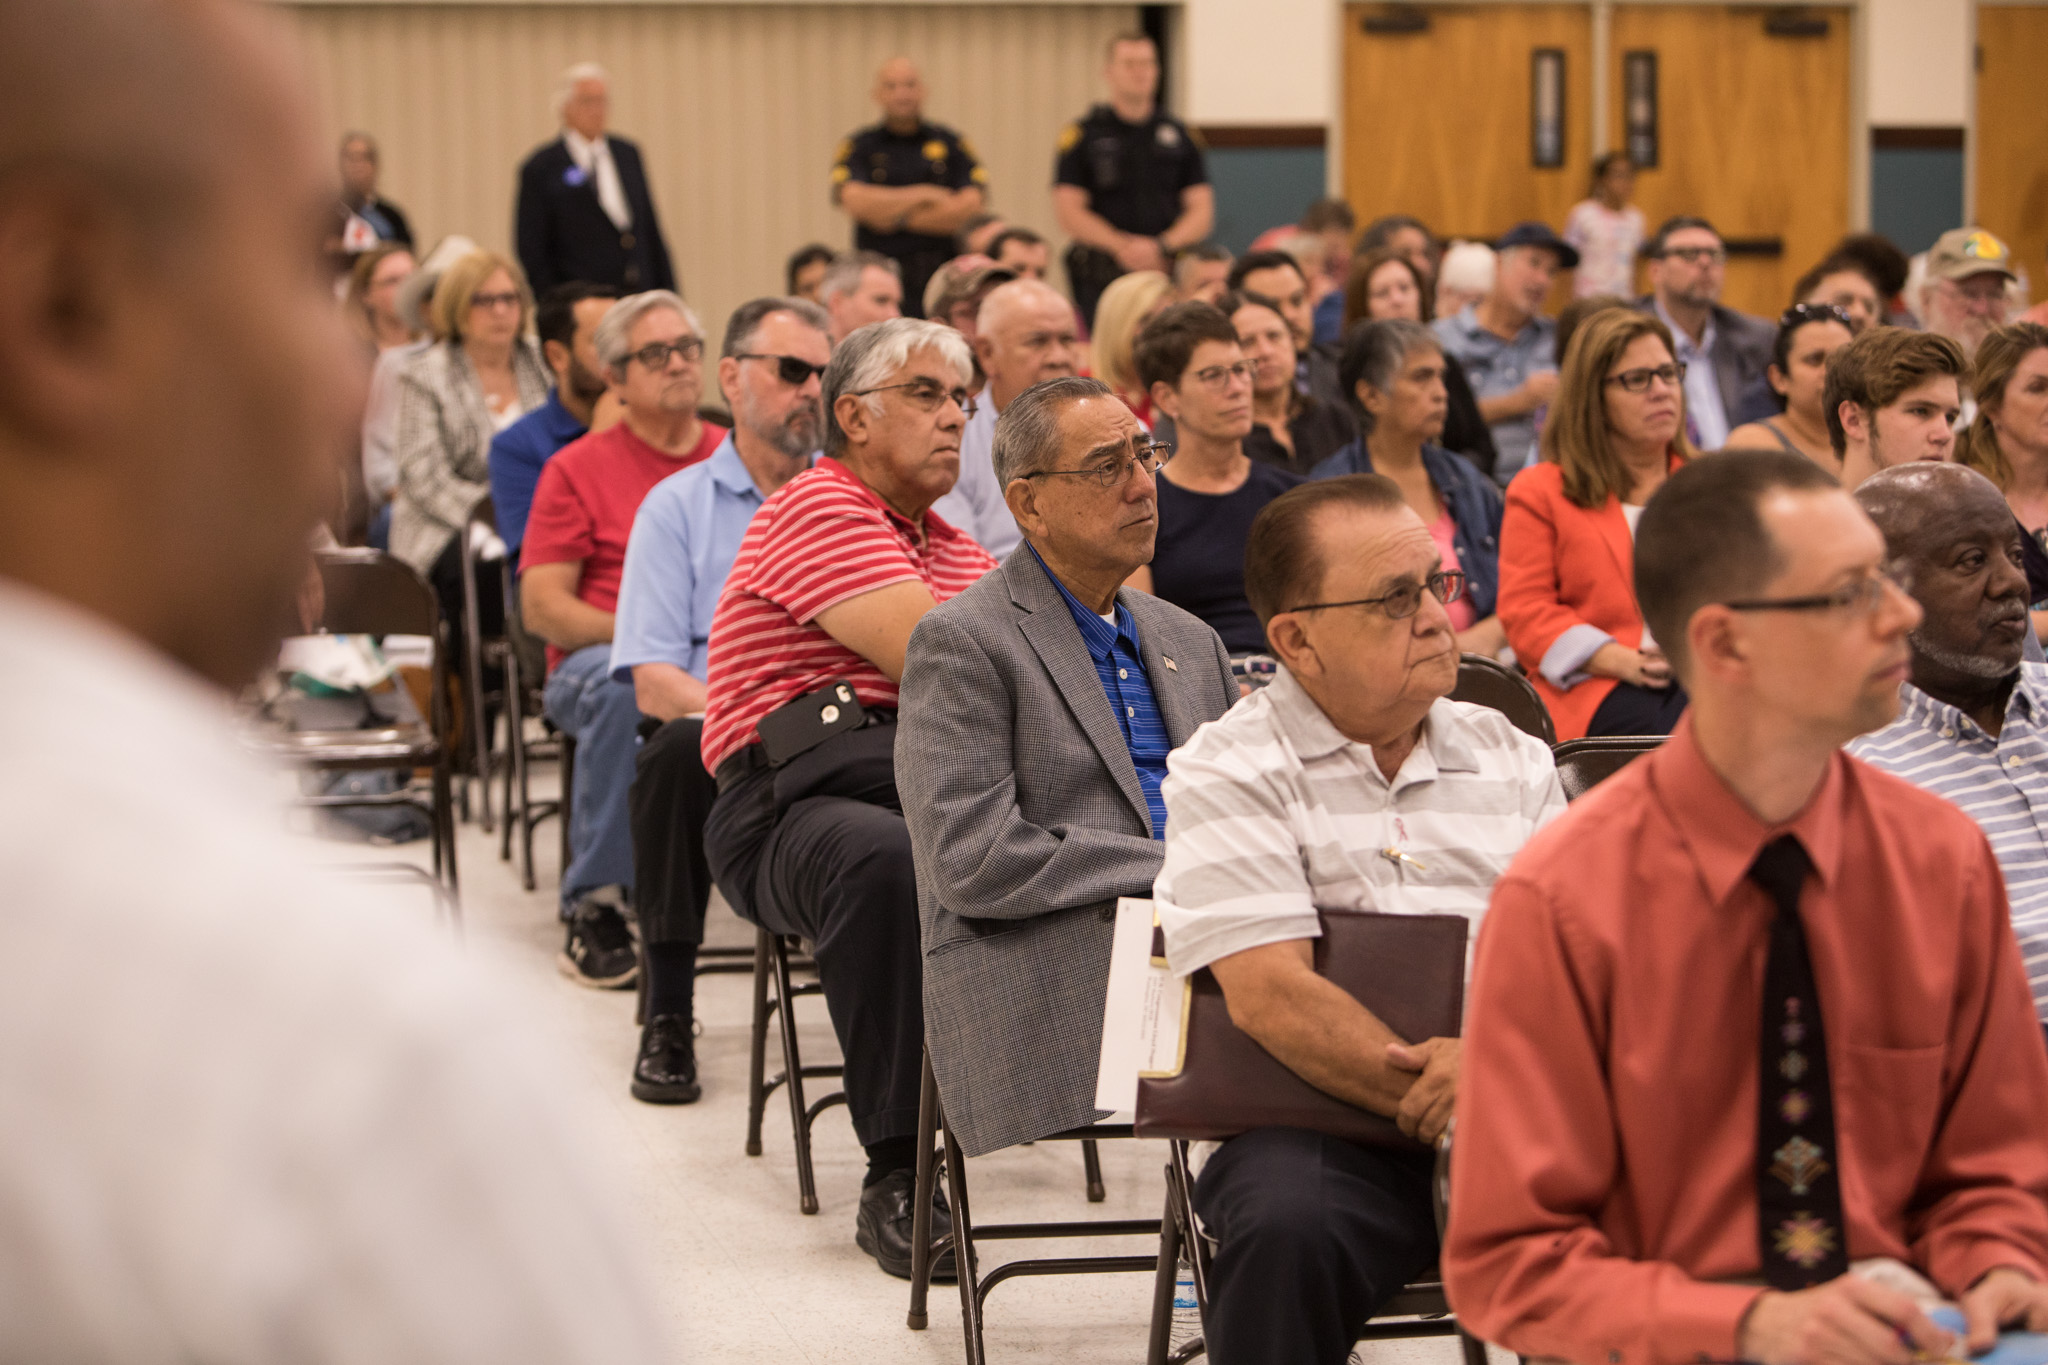 A large group of community members of Government Hill gather for a town hall meeting at St. Patrick Catholic Church.